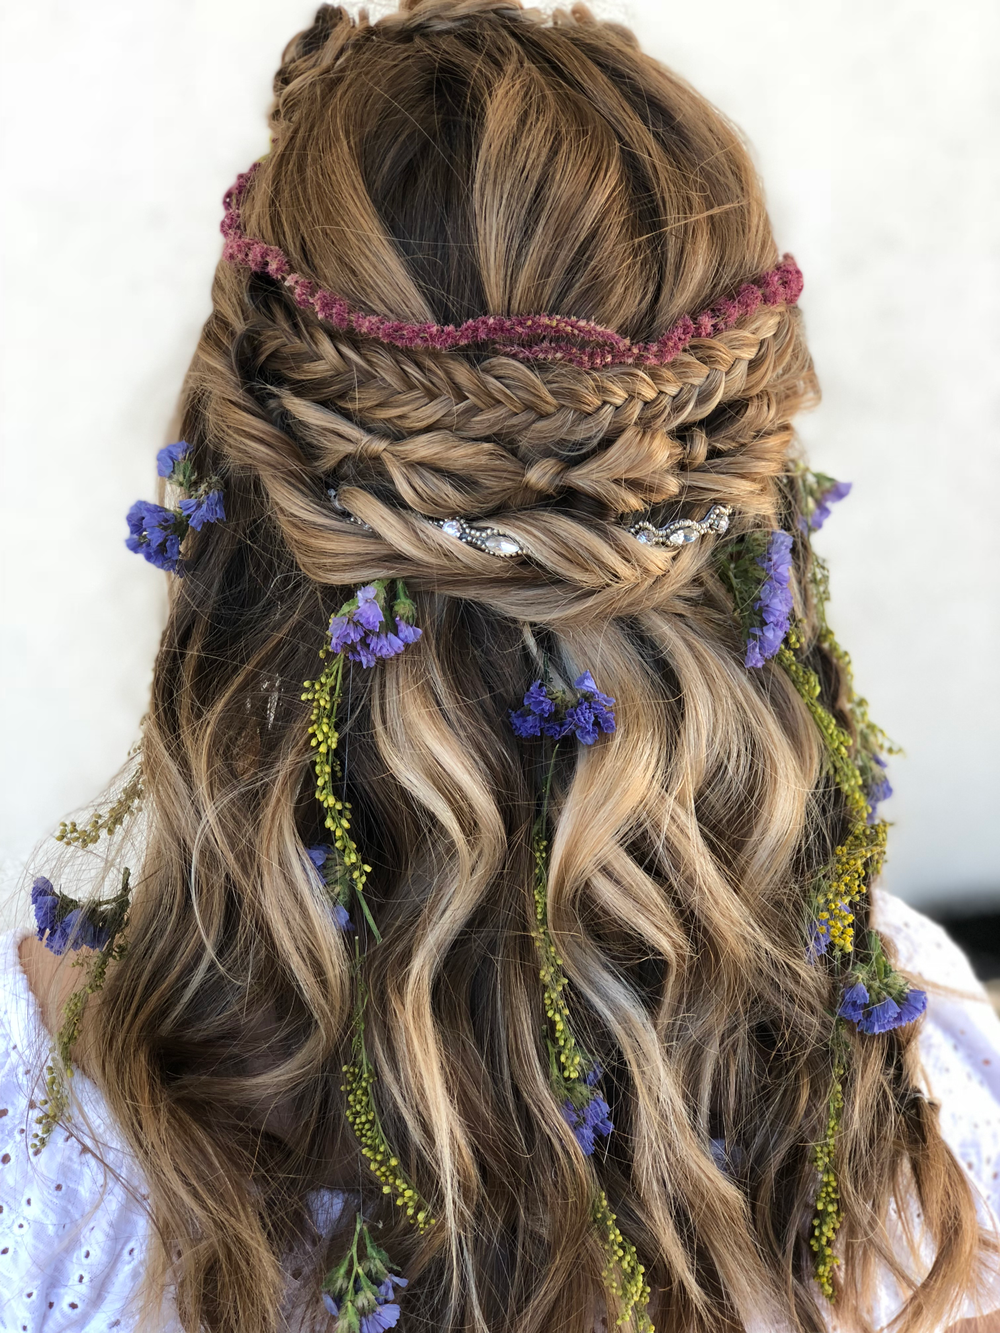 <p>Heather Schmick @heatherhairandbridalstylist: This look started with a sun-kissed balayage. Schmick used scruples clay lightener + scruples power blonde with B3 and 30 vol-using a chip brush/seran wrap and no heat. The hair was toned with Redken Shades EQ 8V/9GI and few drops of 9NA + clear then blow dried with round brush. The styling began with curling the hair in boho waves. To create the knots she made 3 flower braids, and for the bandana part she made a fish tail braid, a topsy braid with the rubber bands covered and twists that are twisted around a pink pewter hair band. To complete the look I finished it with a 3 strand braid and flowers to create a dream catcher effect and a flower crown.</p>